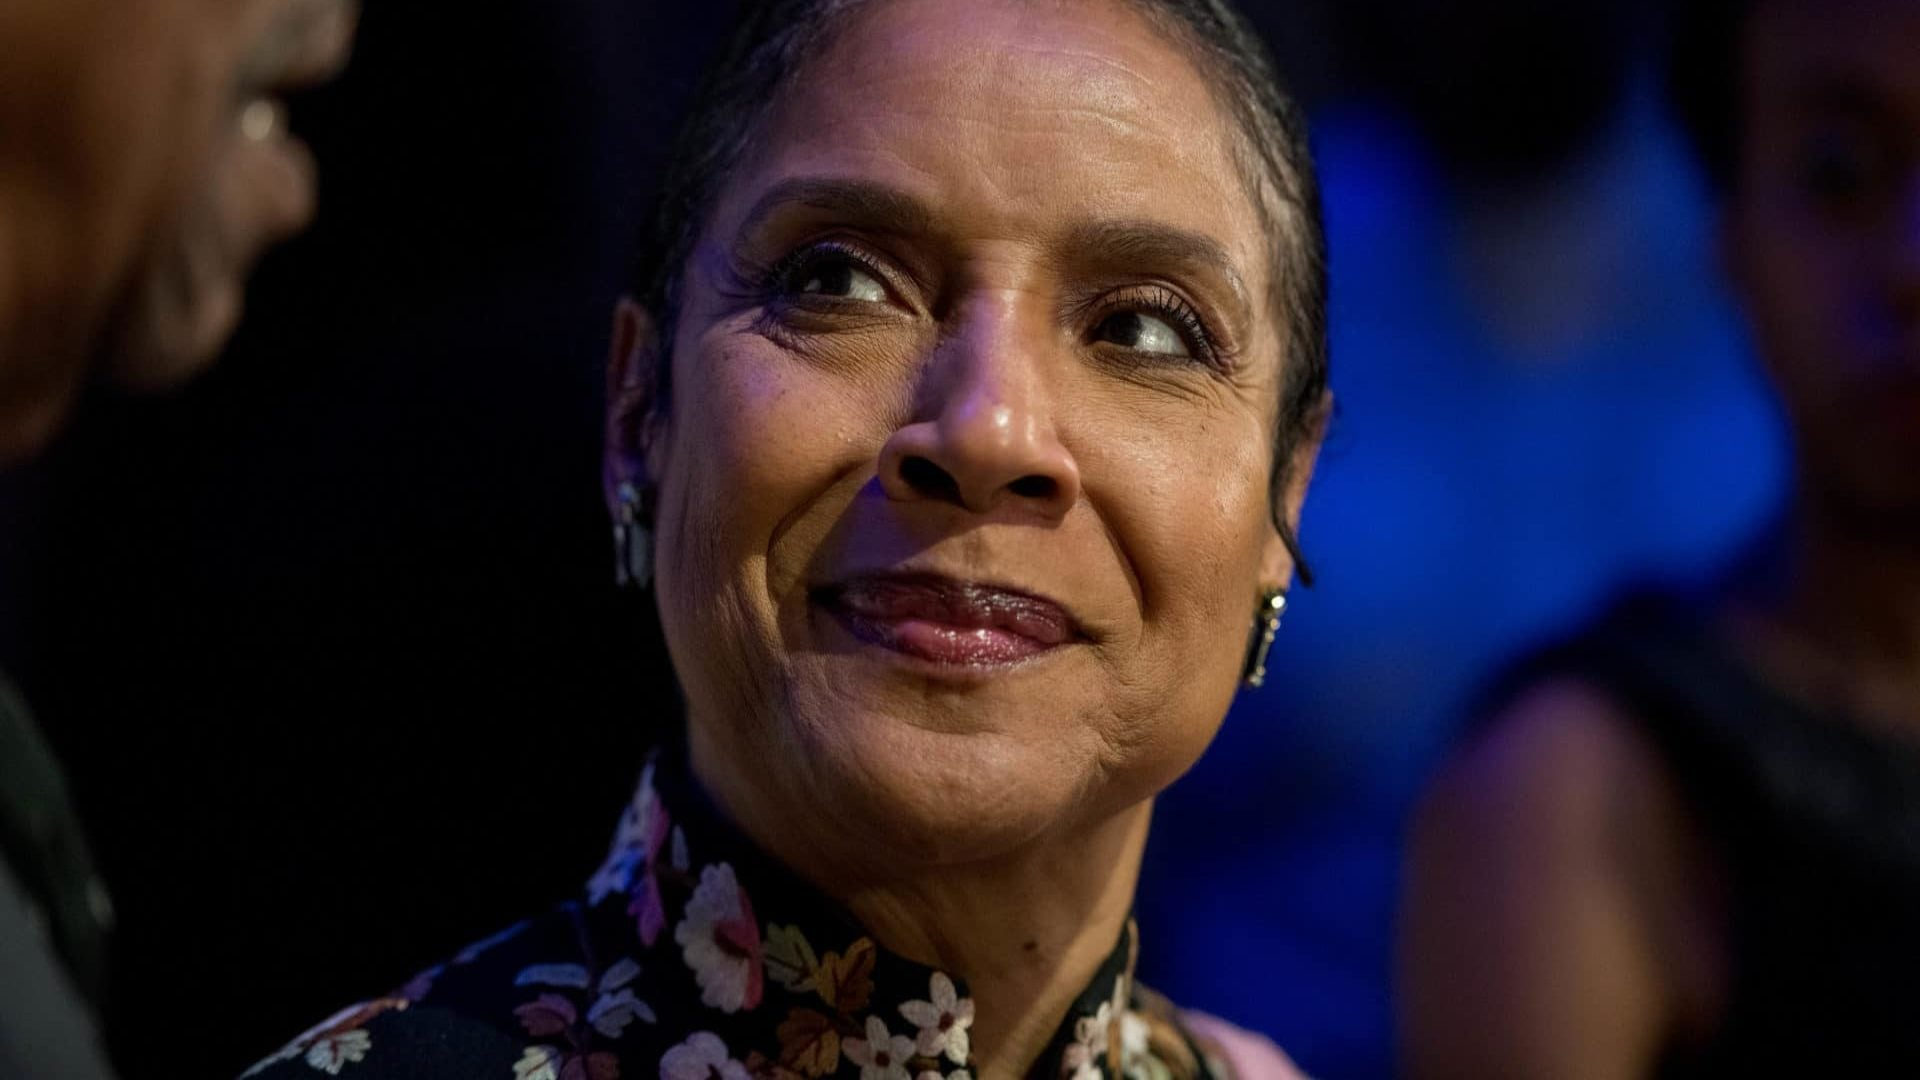 Phylicia Rashad To Play Susan Kelechi Watson's Mom On 'This Is Us'